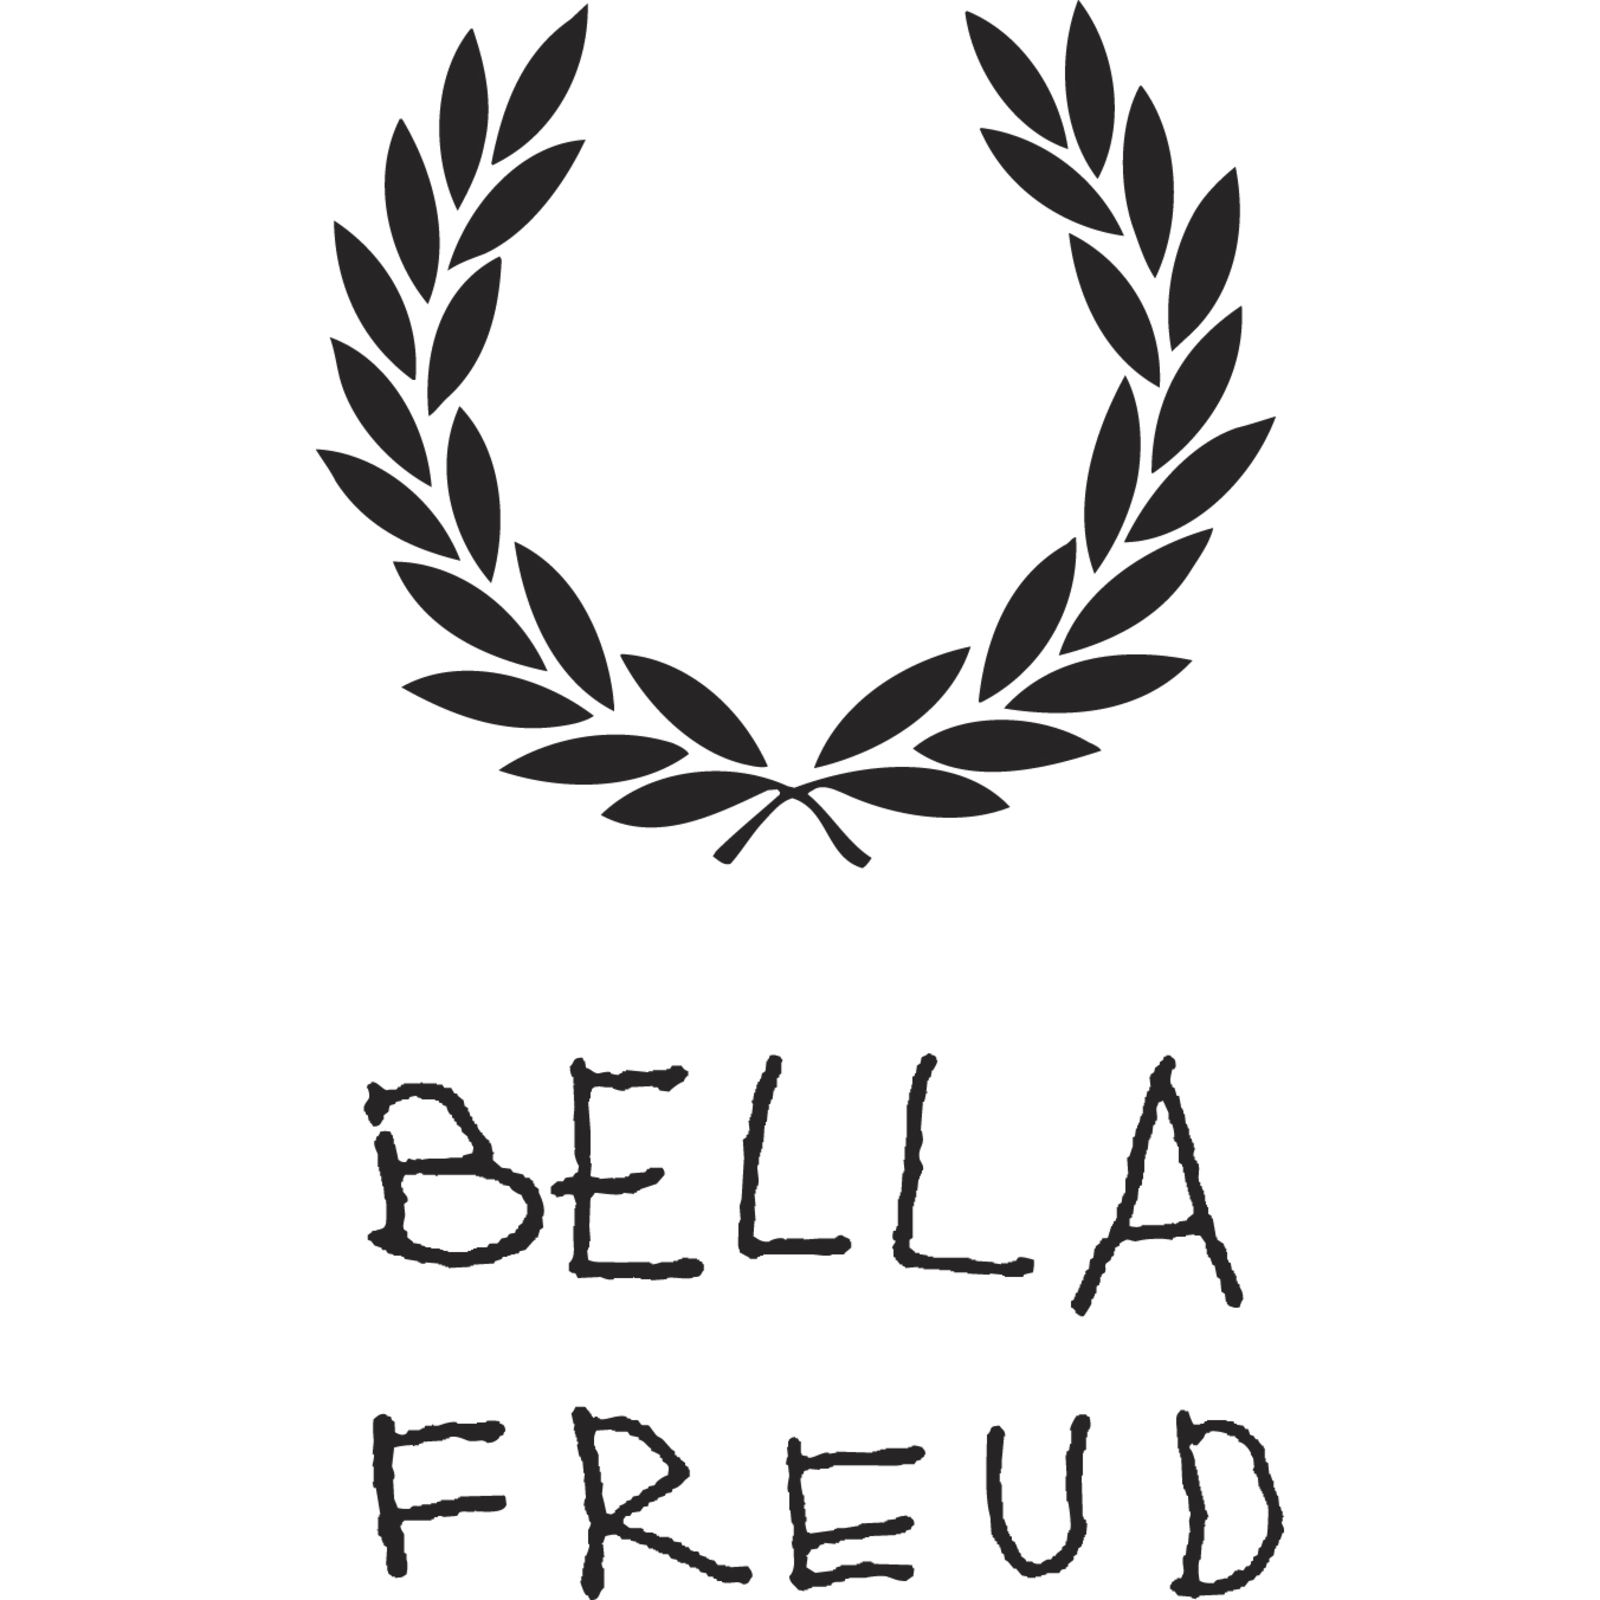 FRED PERRY Laurel Wreath | BELLA FREUD